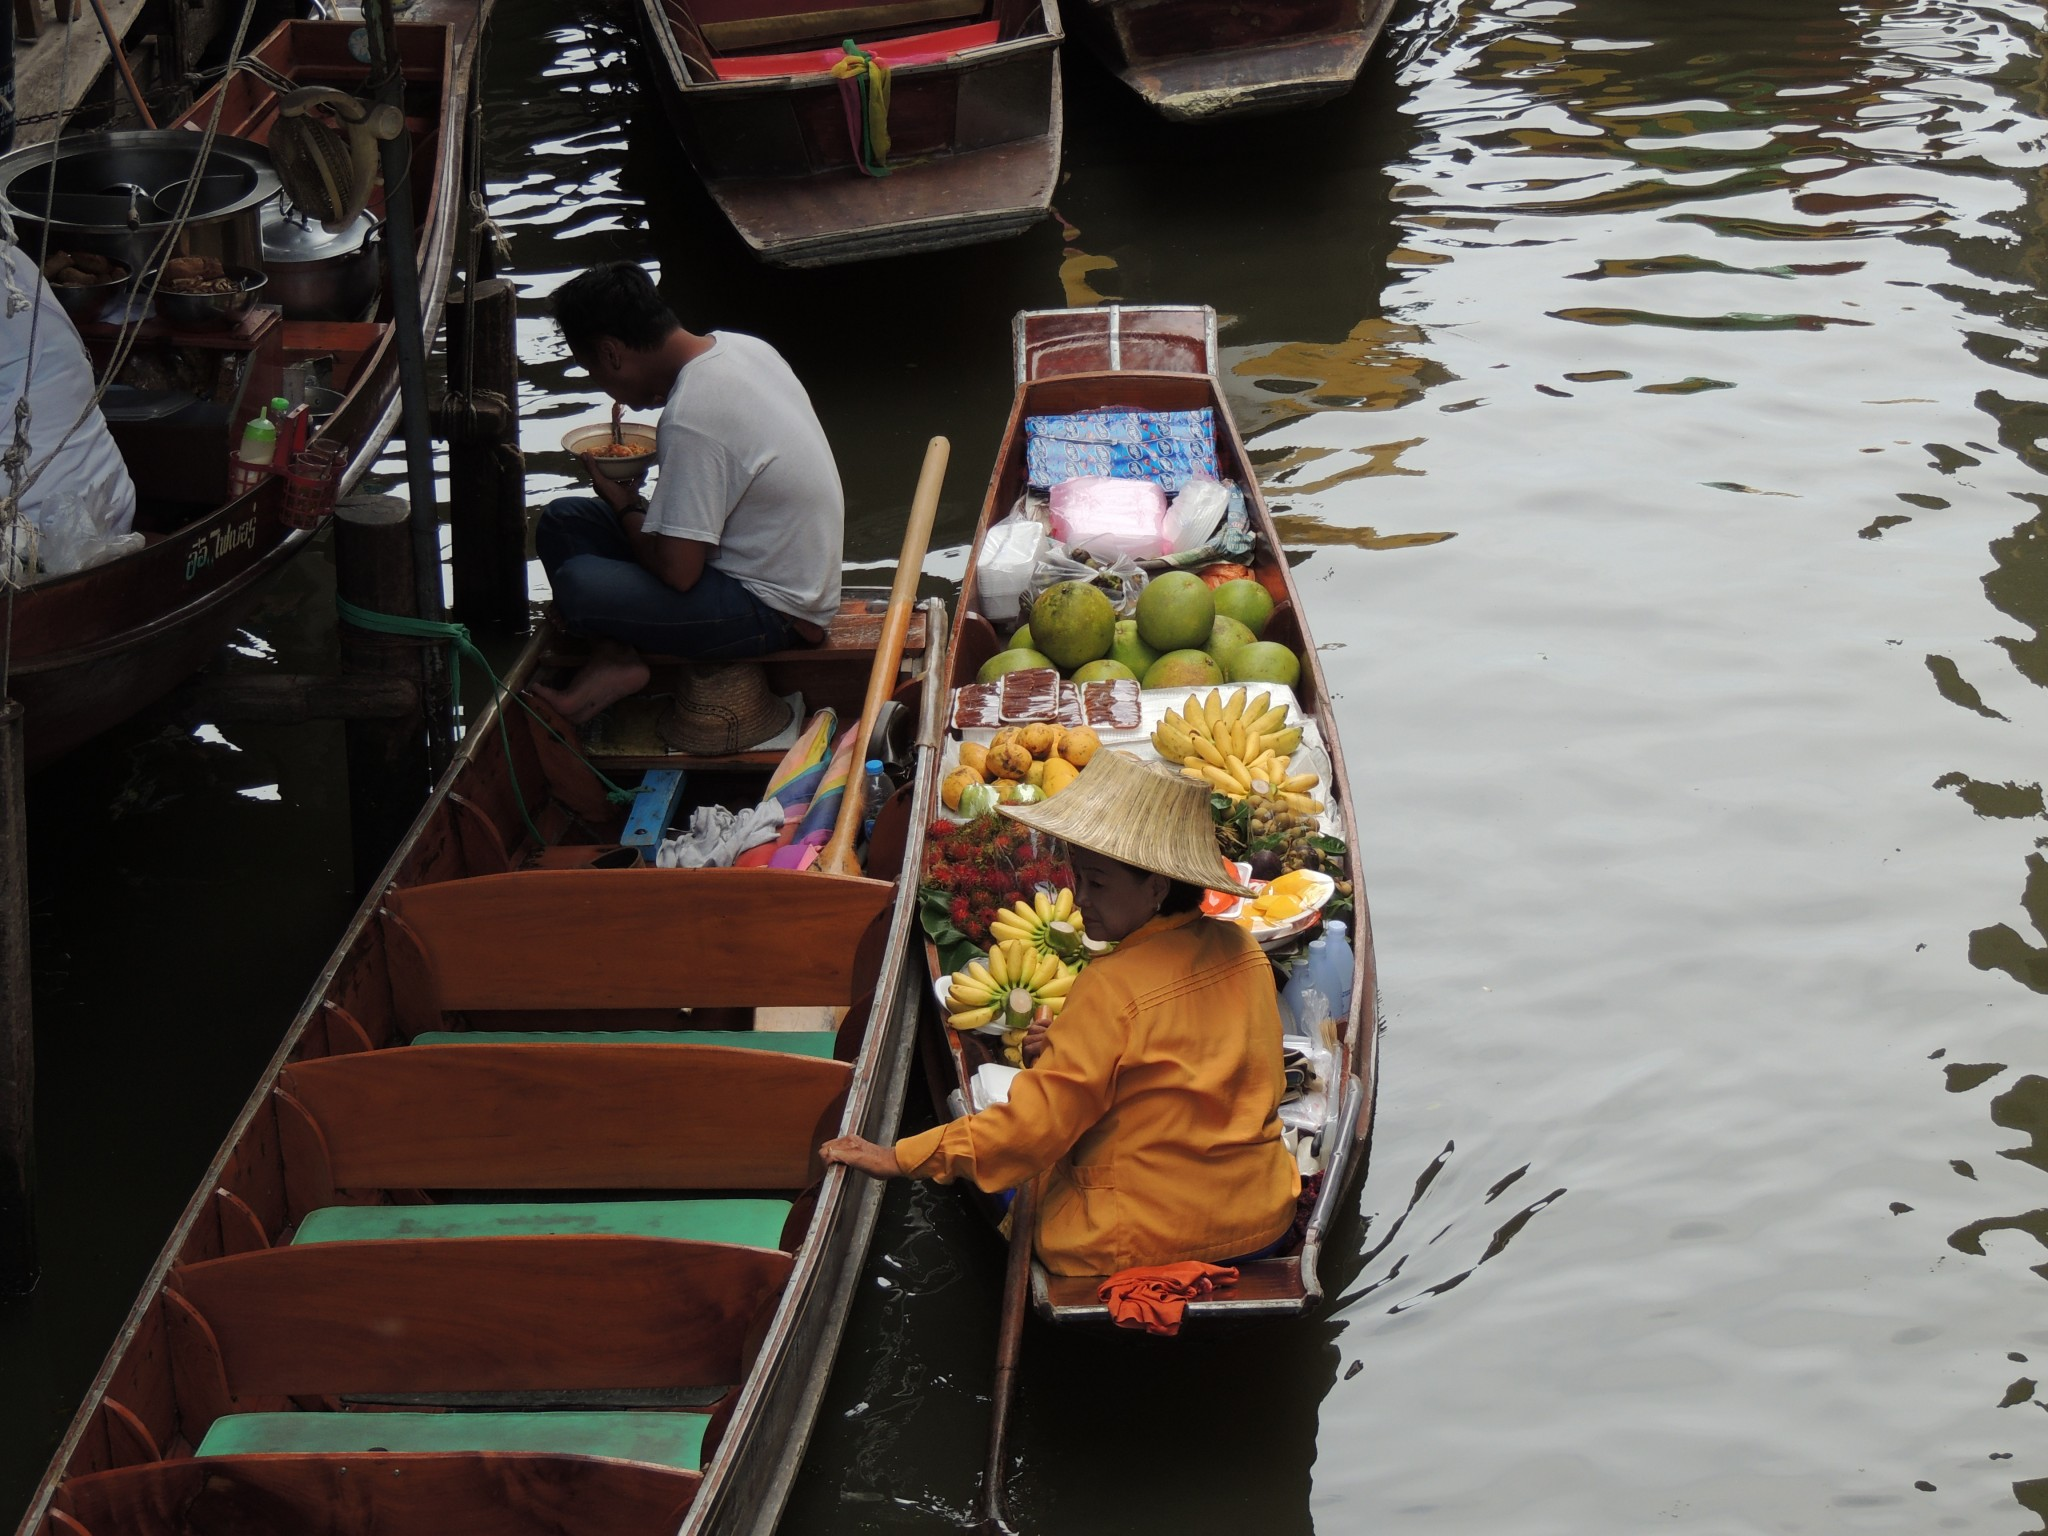 Thailand, floating market in Bangkok